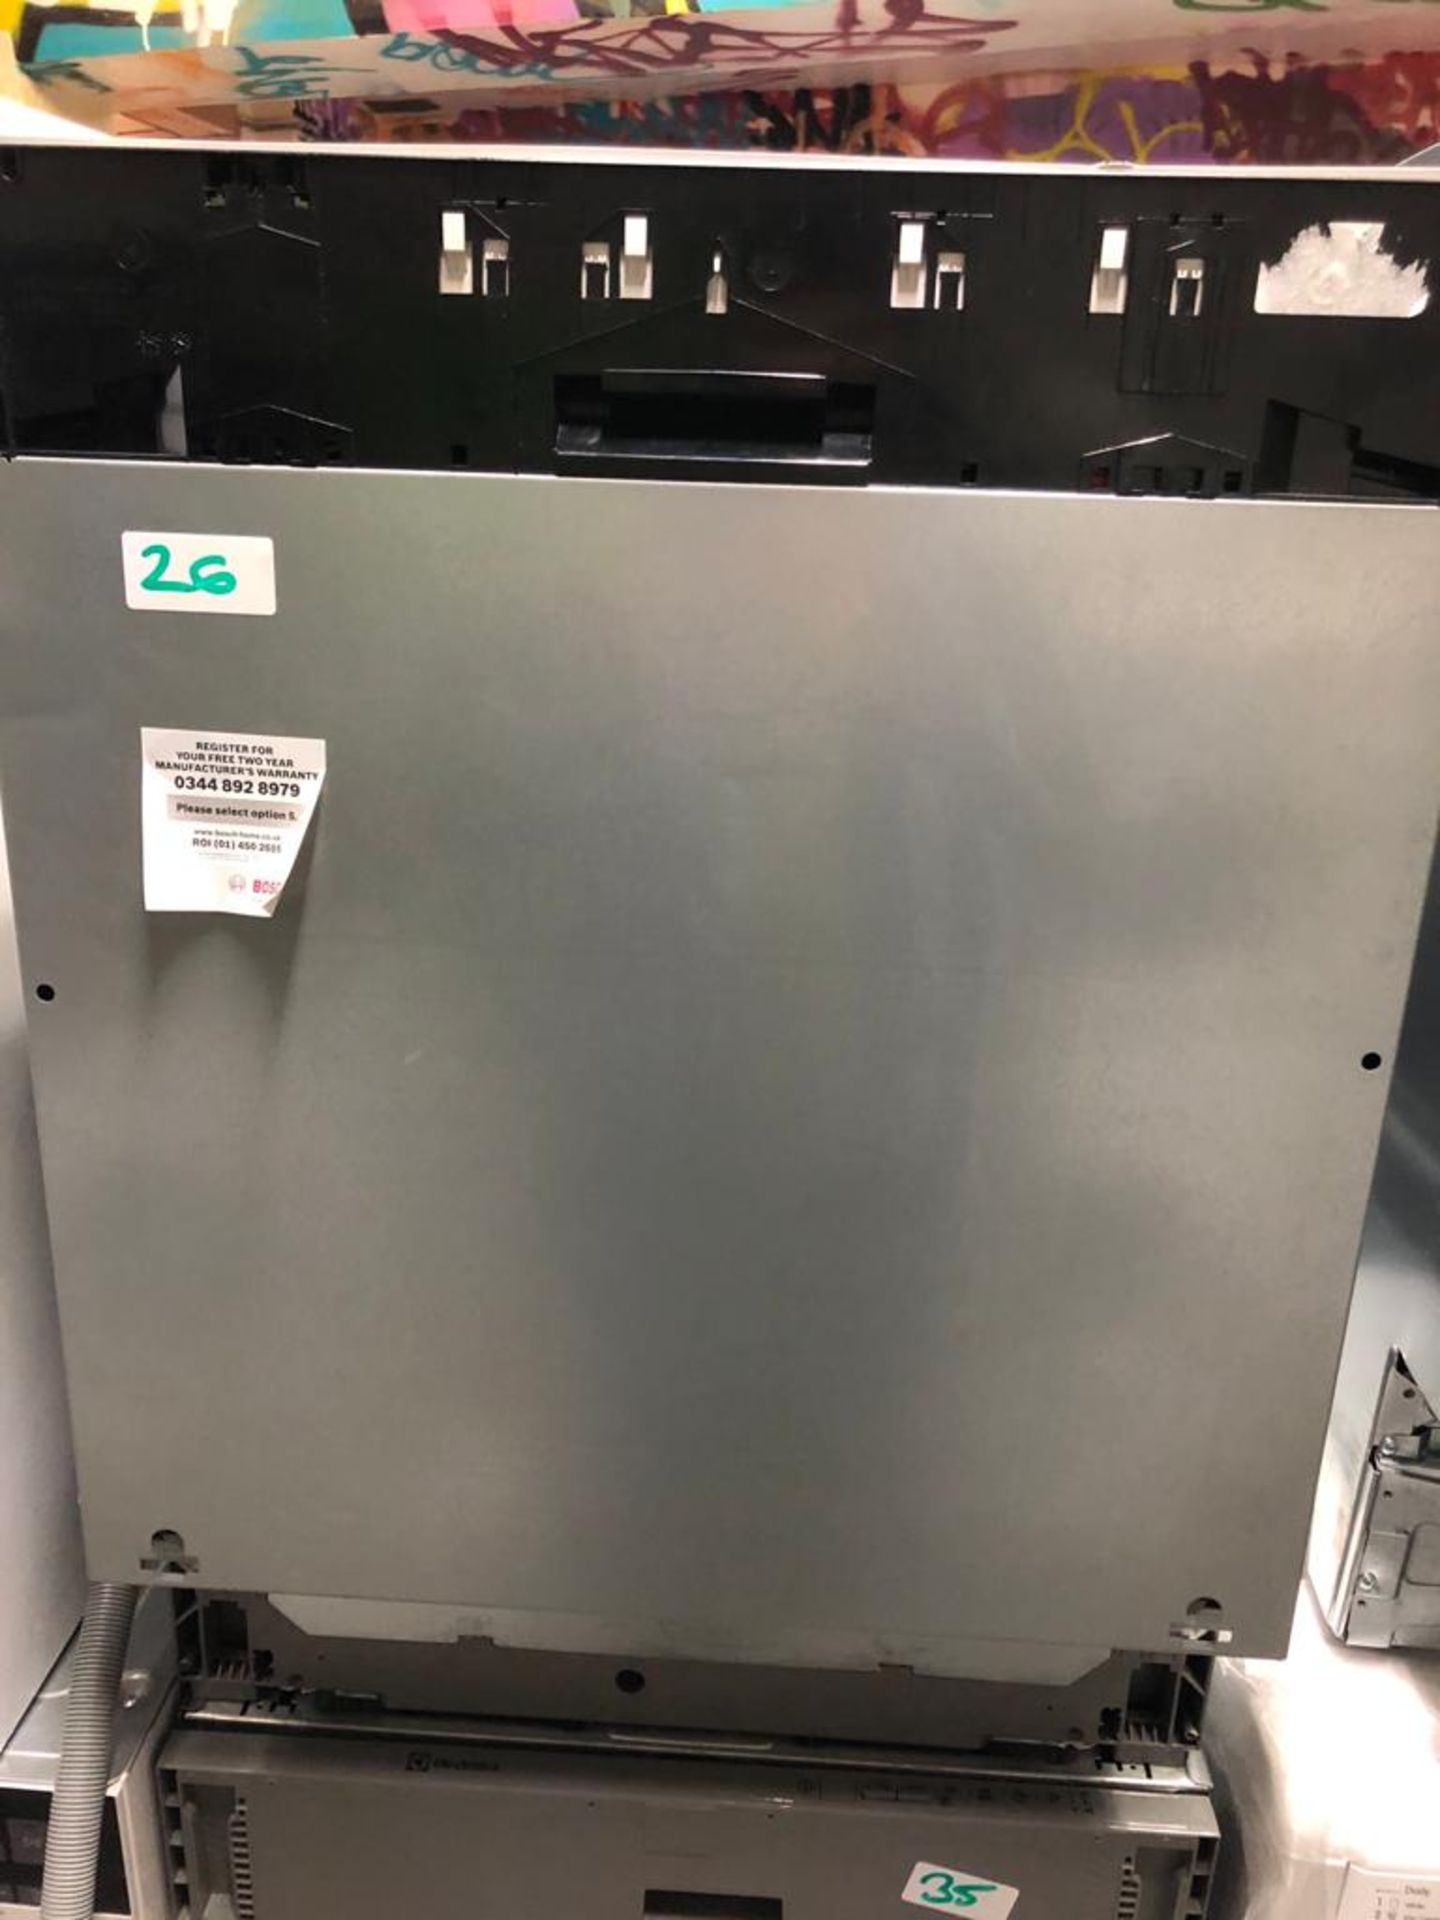 NEW/GRADED AND UNPACKAGED Bosch SMV40C30GB Integrated Dishwasher (Dent in roof of D/W)